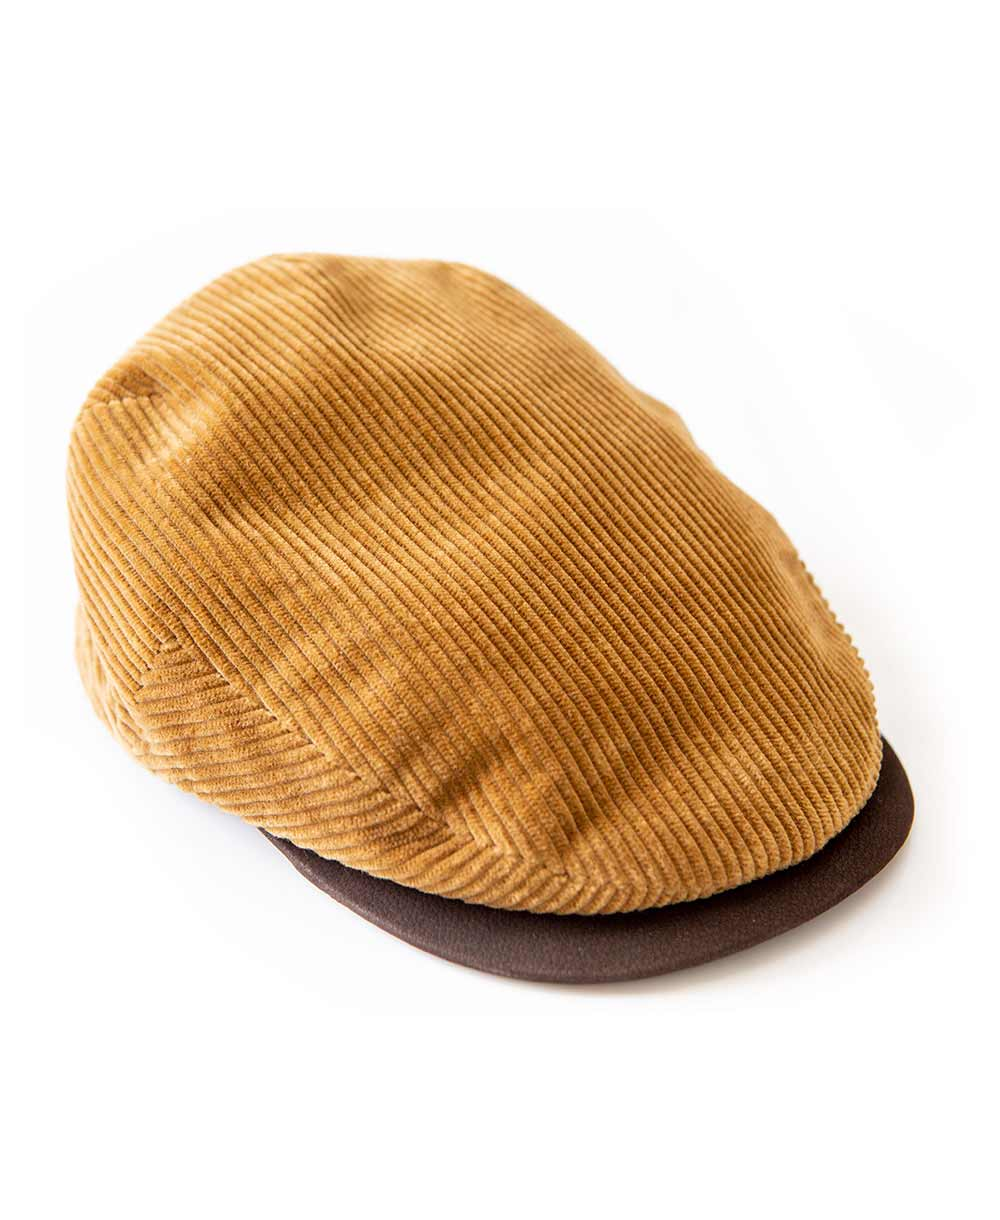 Corduroy Flat Cap with Leather Strap Tan